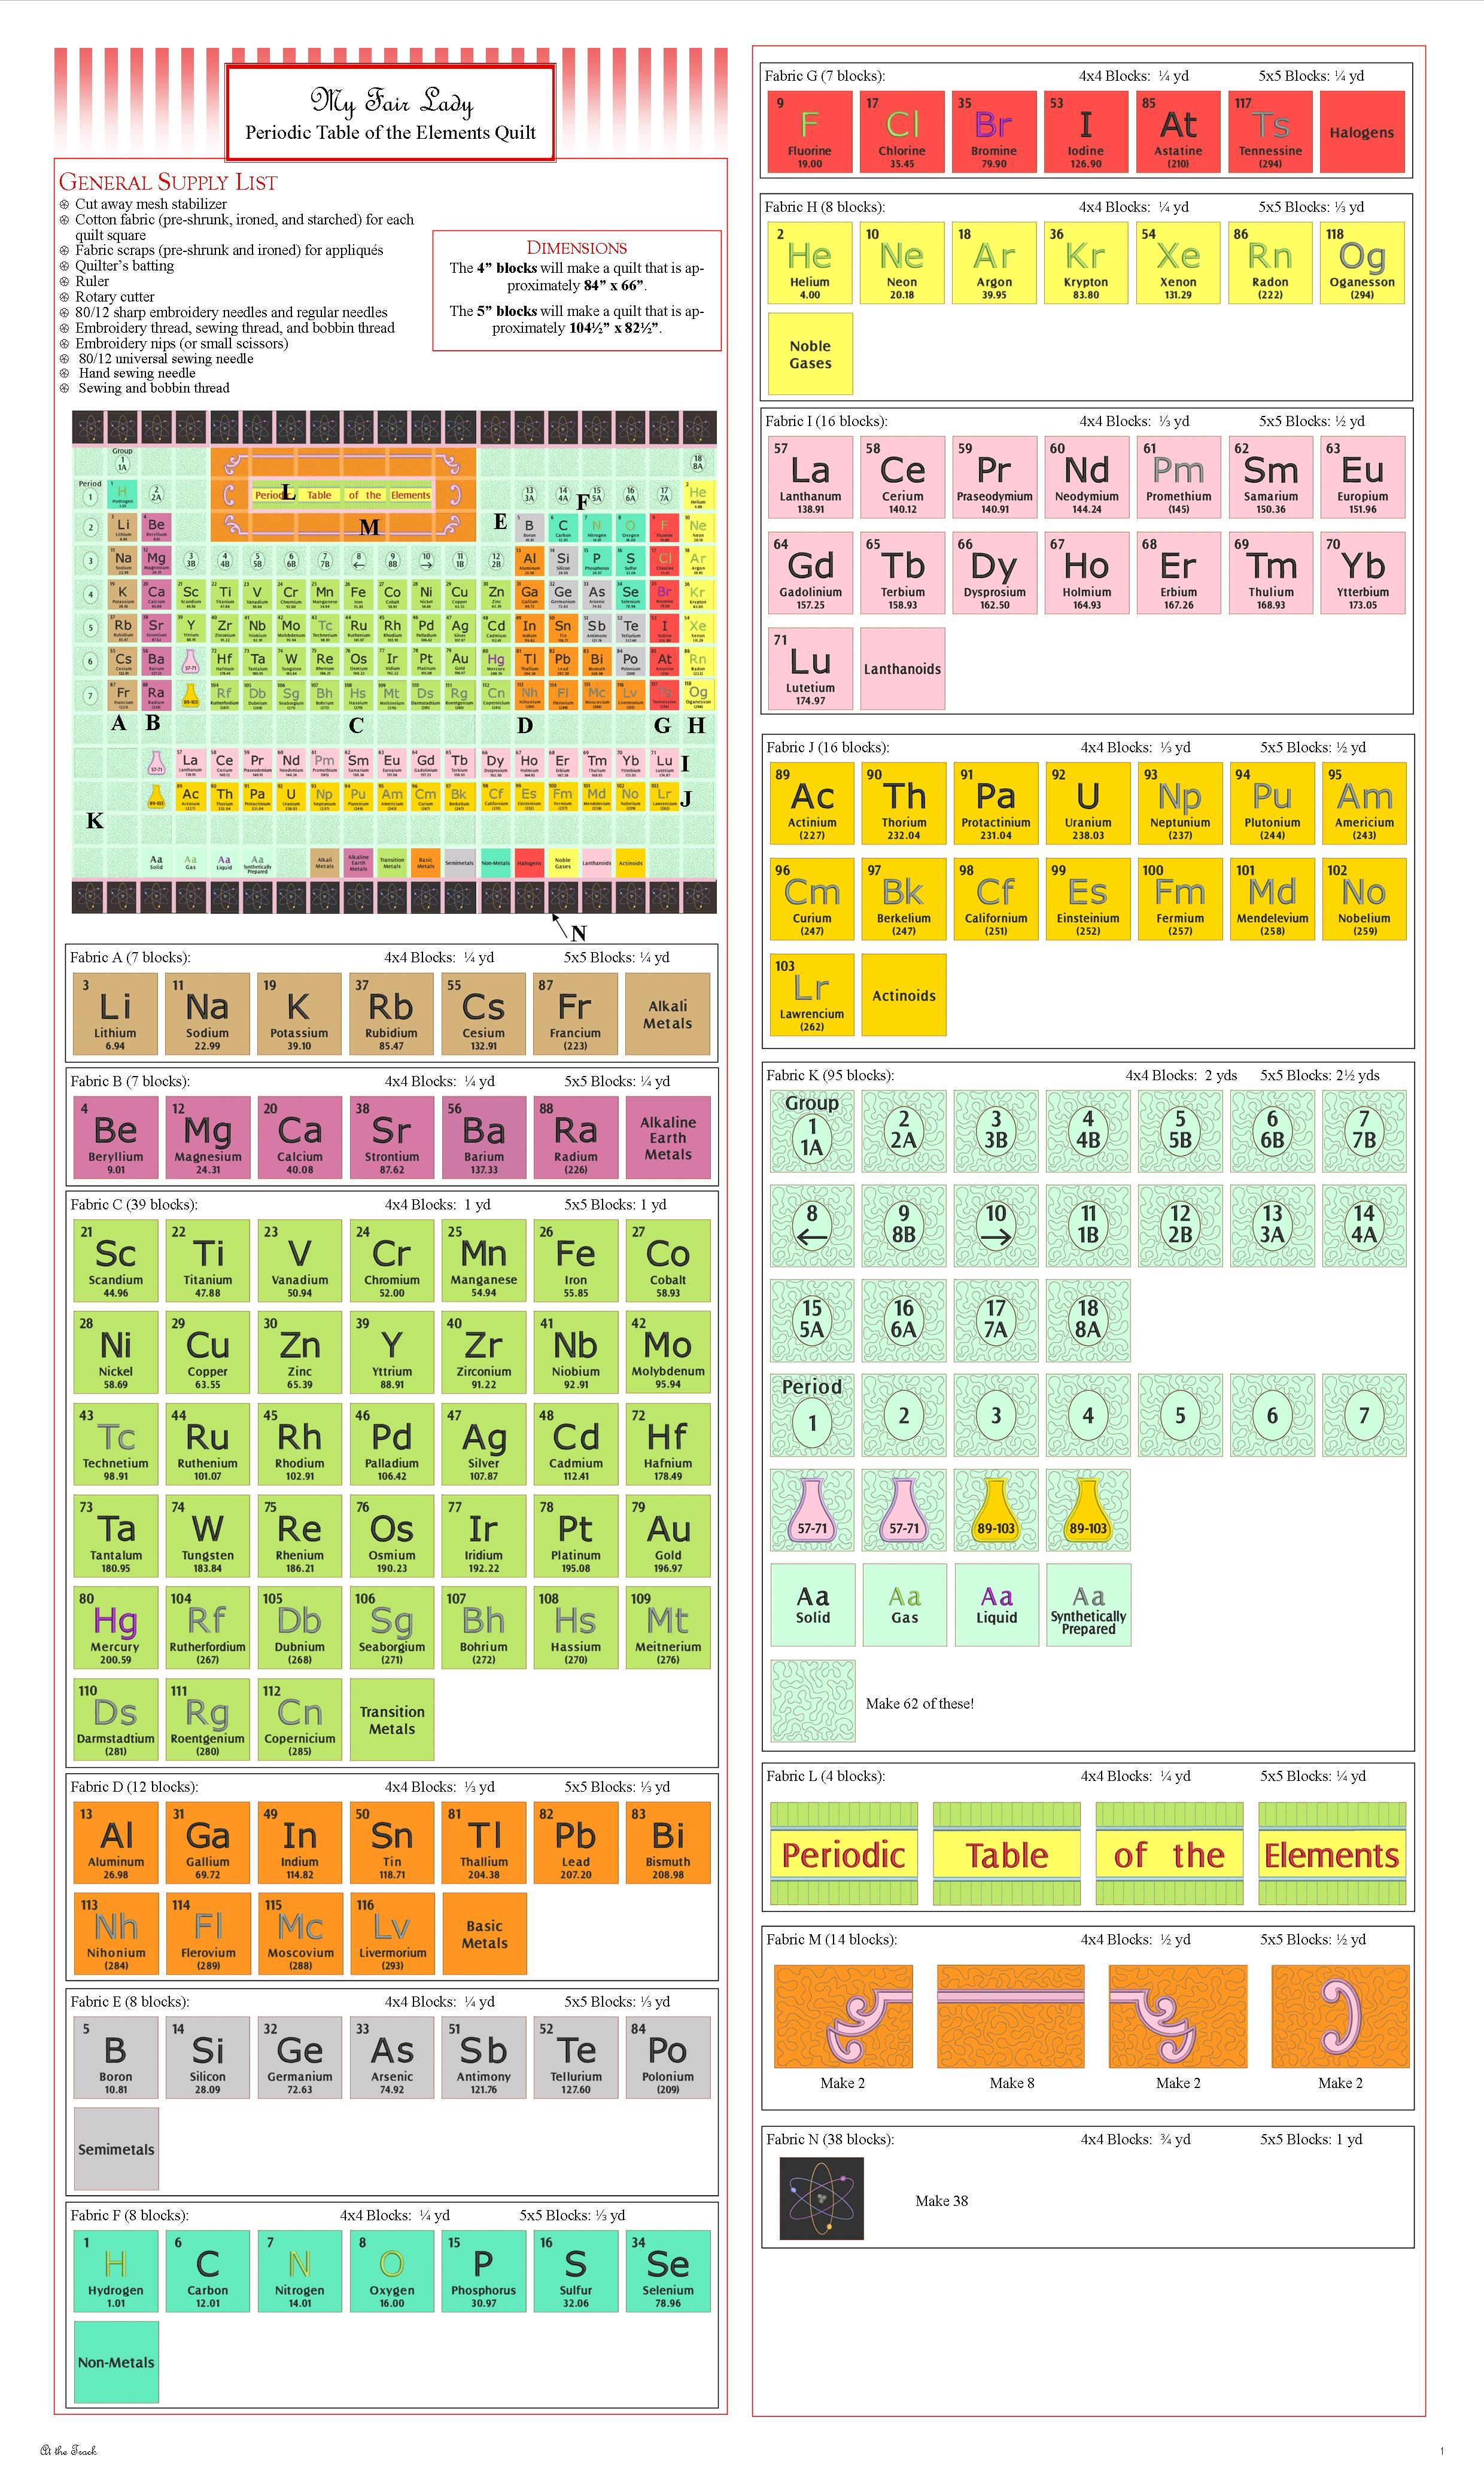 Periodic table of the elements quilt image gallery click on image to enlarge periodic table of the elements quilt urtaz Gallery